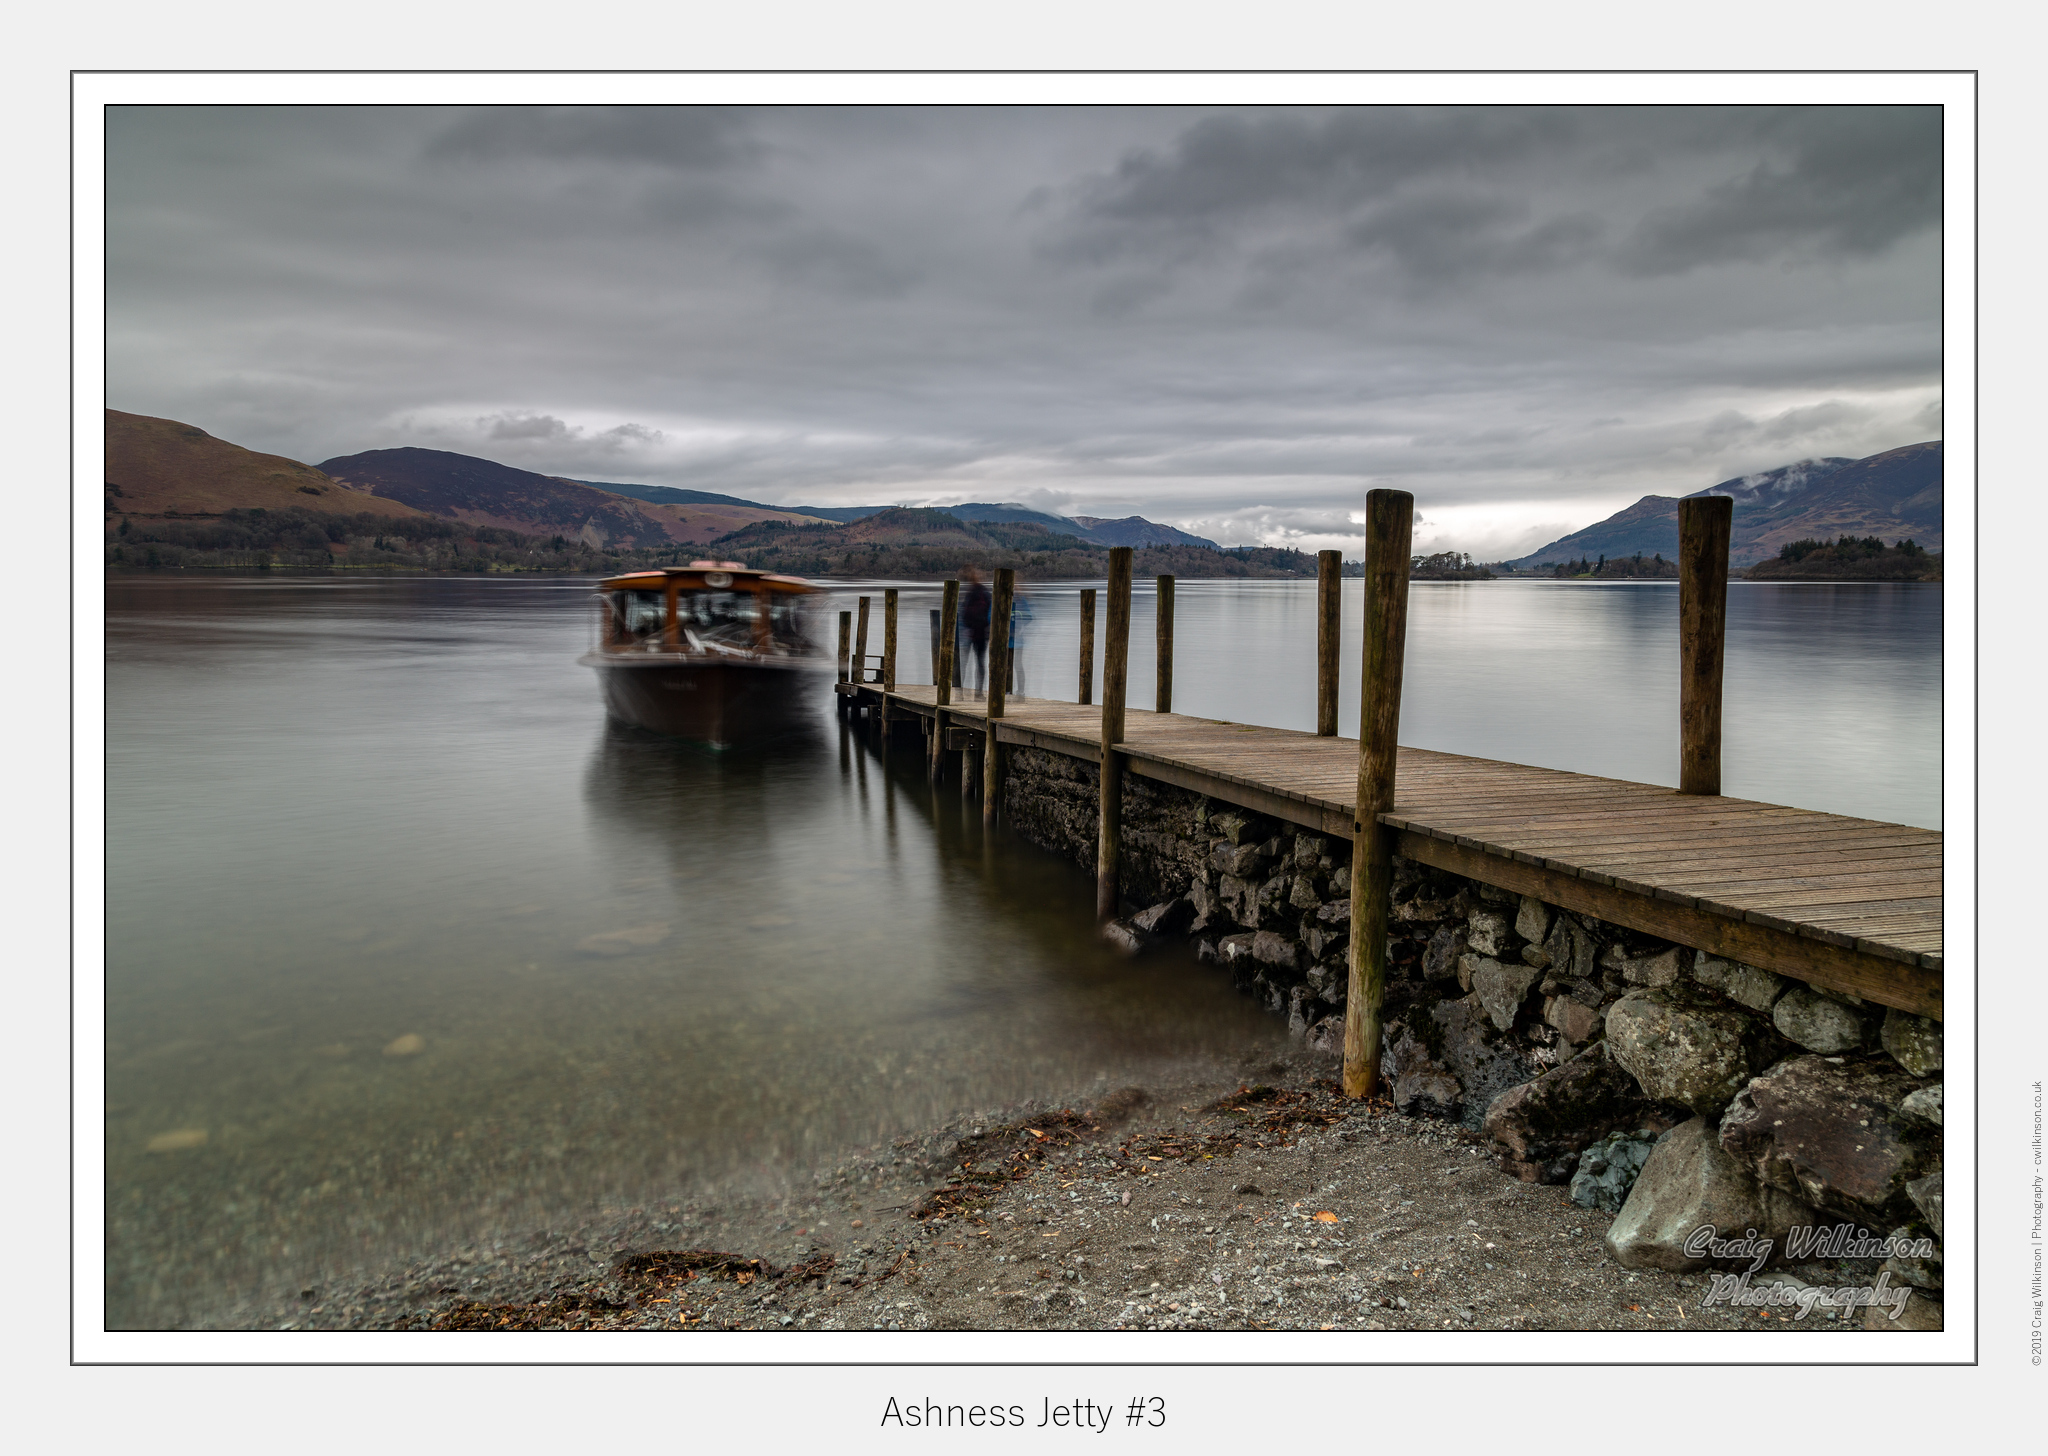 02-Ashness Jetty #3 - (5760 x 3840).jpg